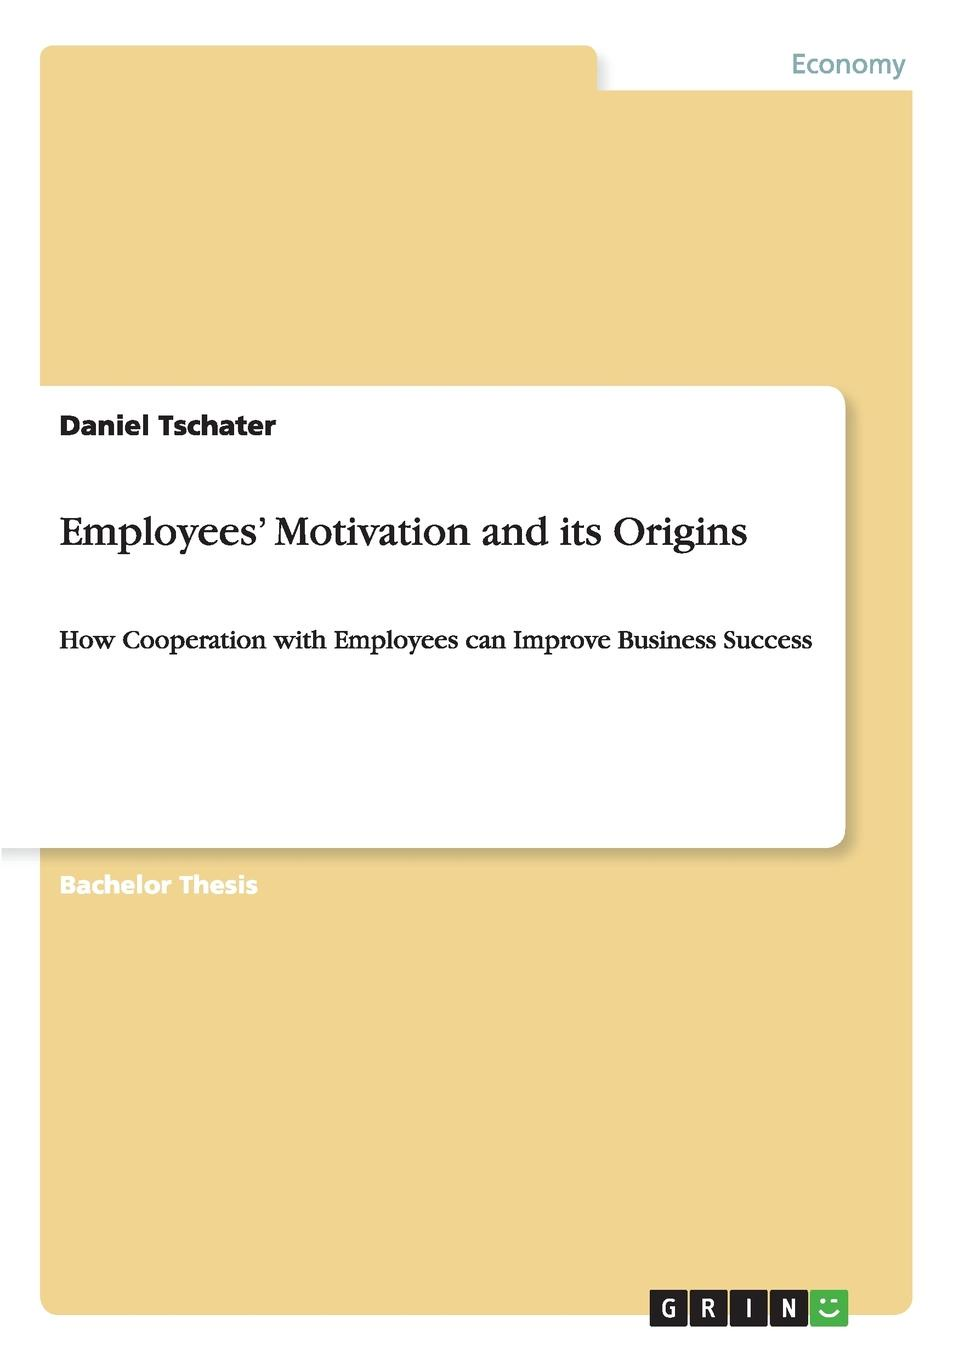 Daniel Tschater Employees. Motivation and its Origins stephen lambert undercover boss inside the tv phenomenon that is changing bosses and employees everywhere